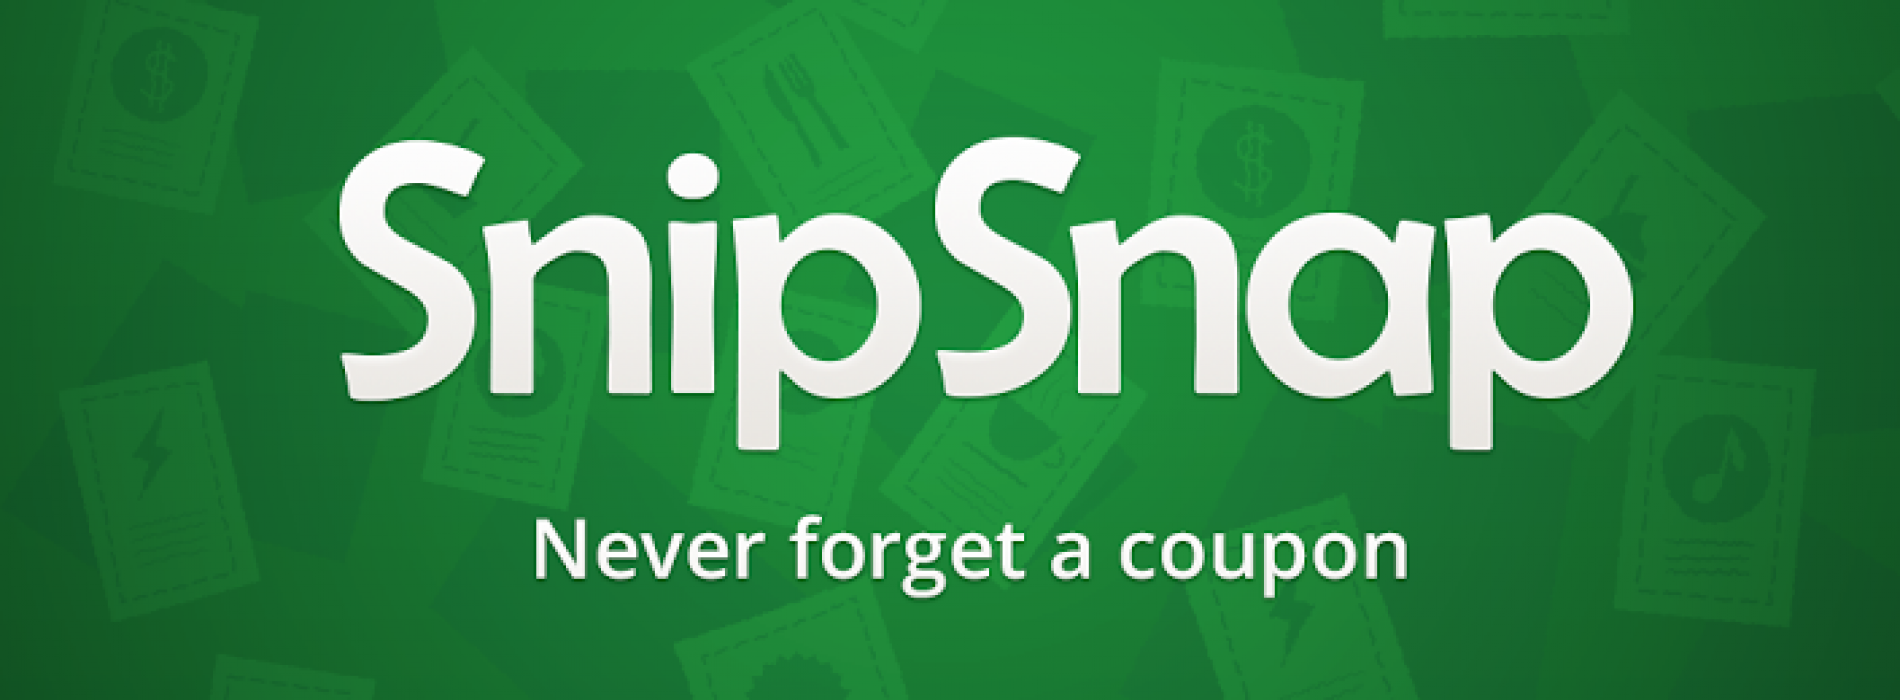 SnipSnap hopes to change the coupon game with Android app